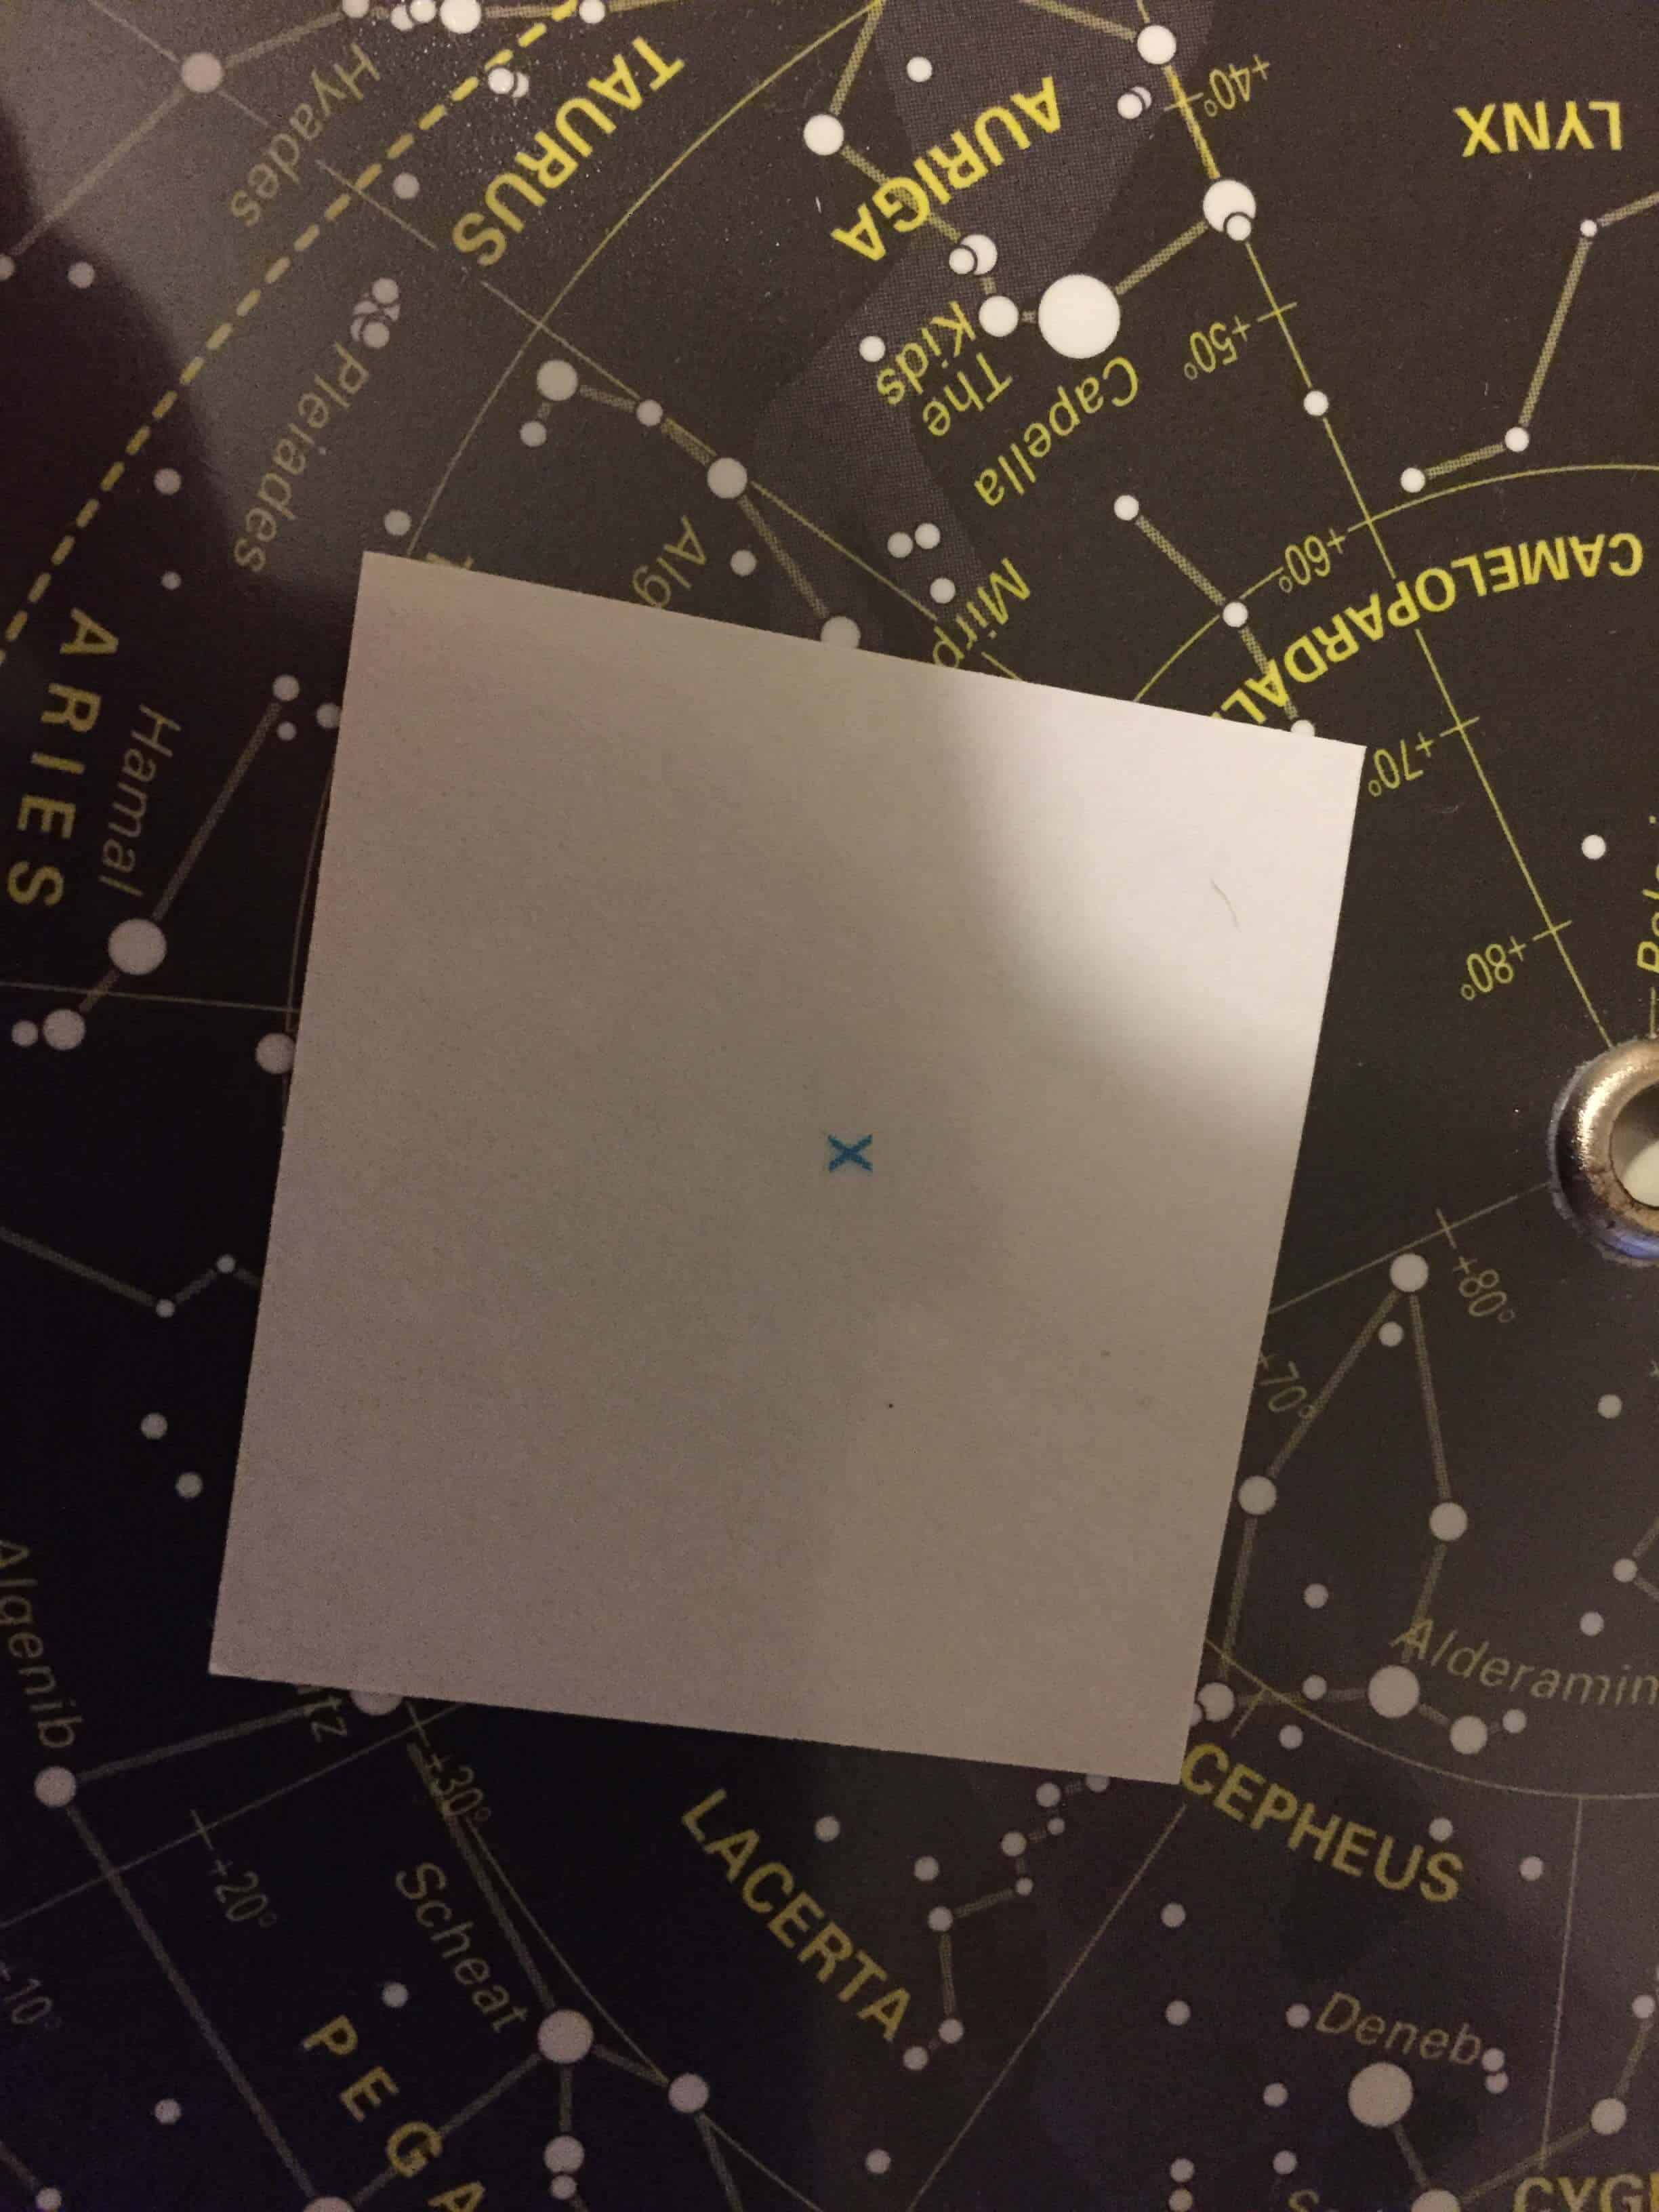 What's the little blue cross on a planisphere?